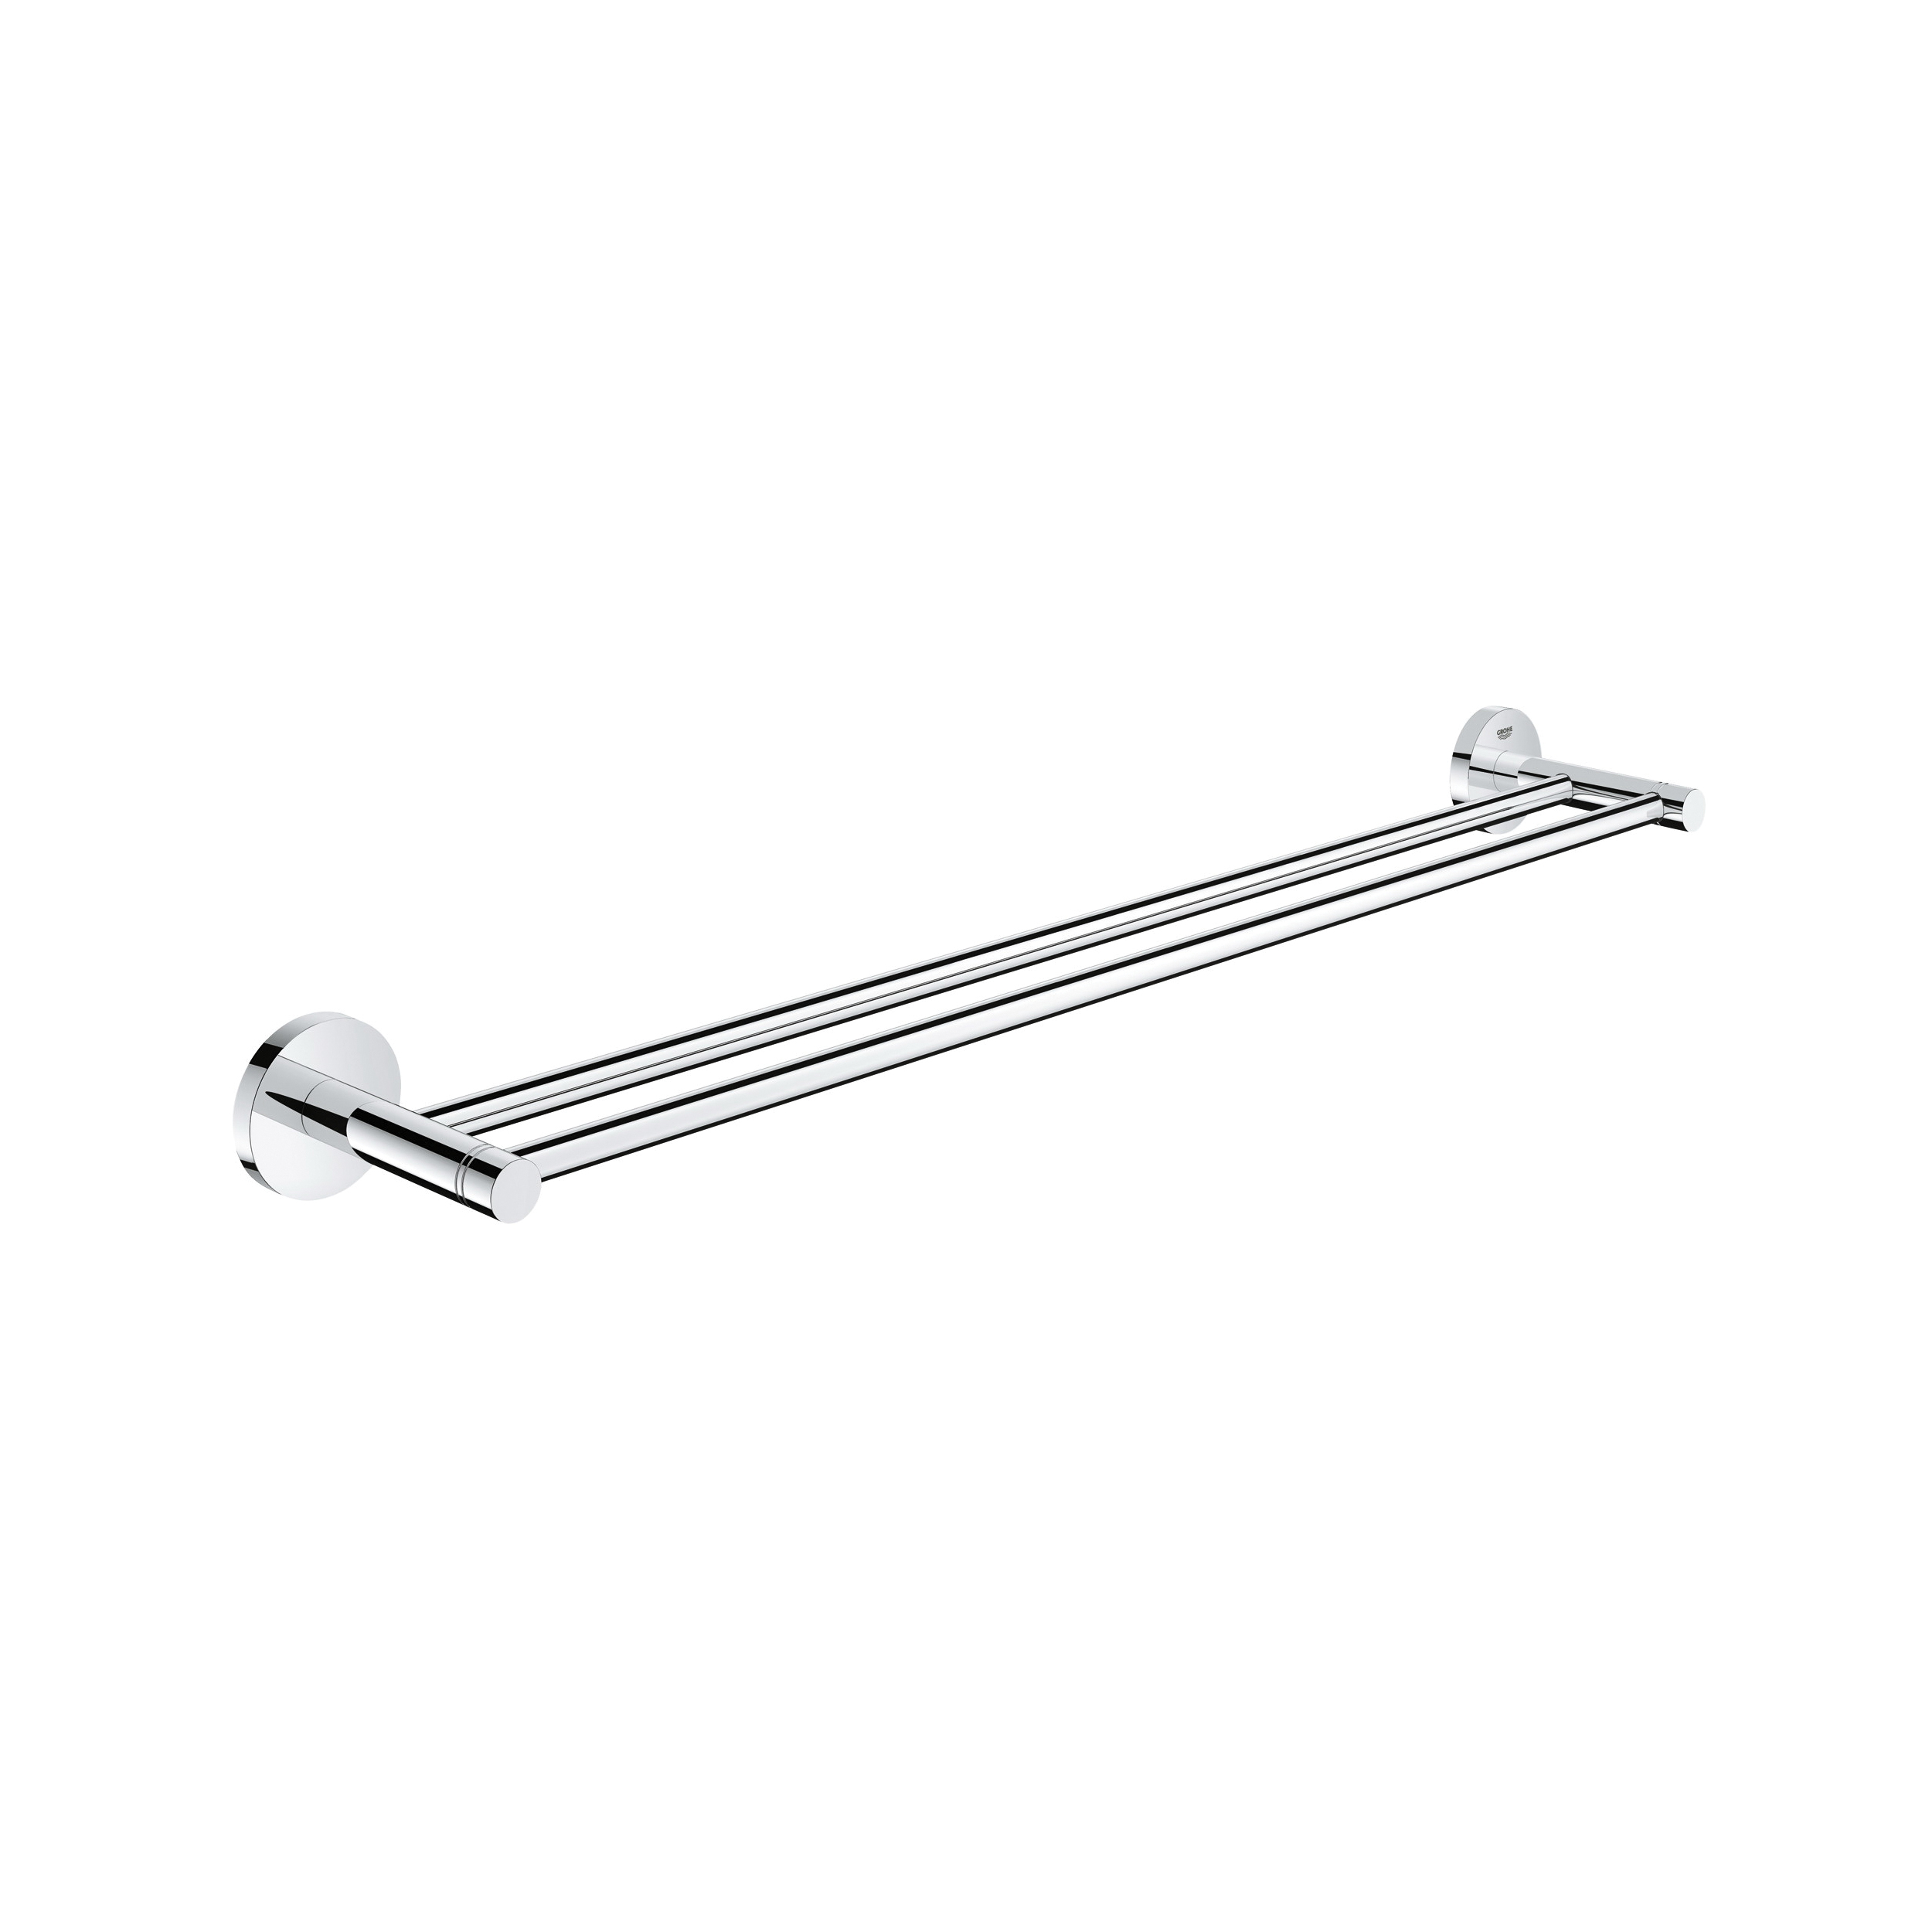 GROHE 40802001 Essential™ Double Towel Rail, 23-5/8 in L Bar, 4-1/8 in OAD, Metal, Import